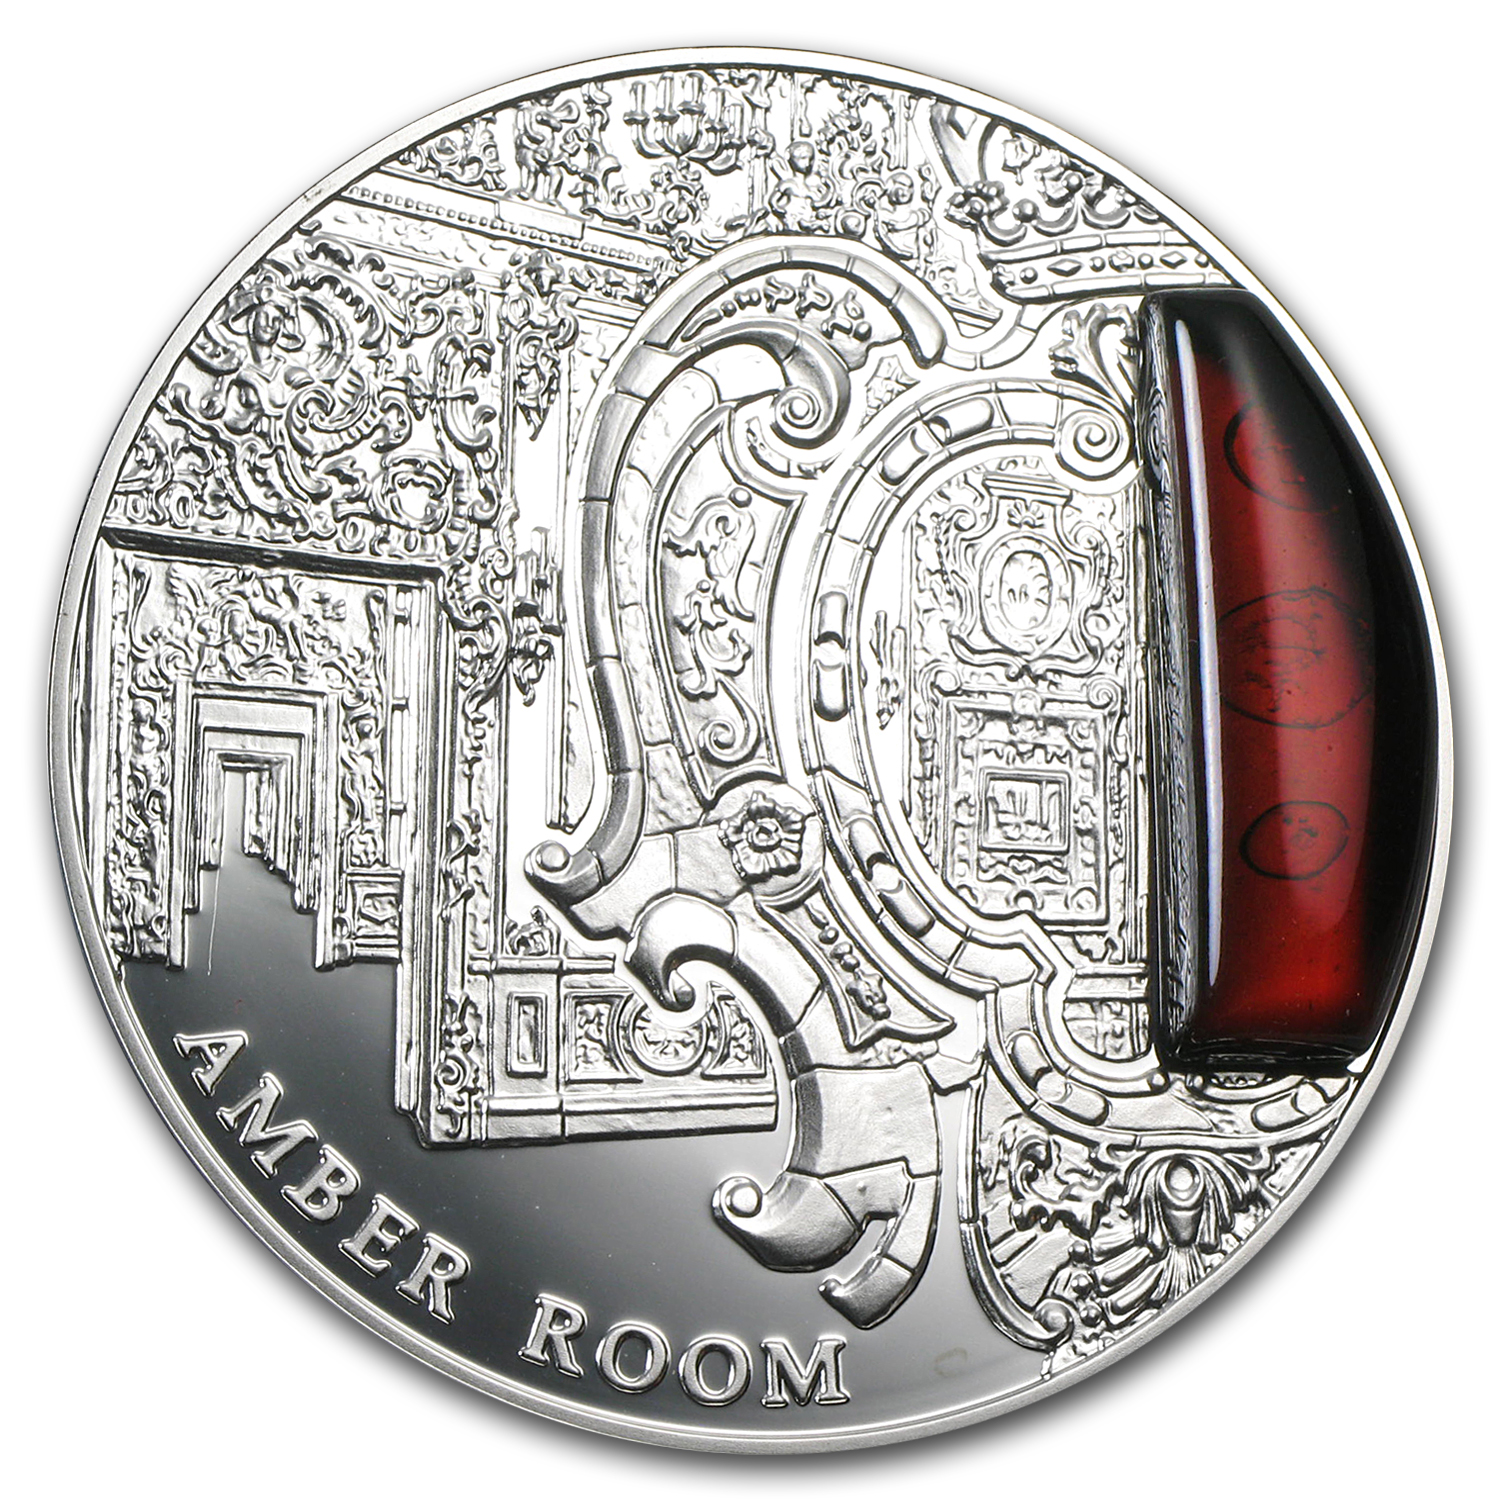 2012 Niue Proof Silver $2 Mysteries of History Amber Room